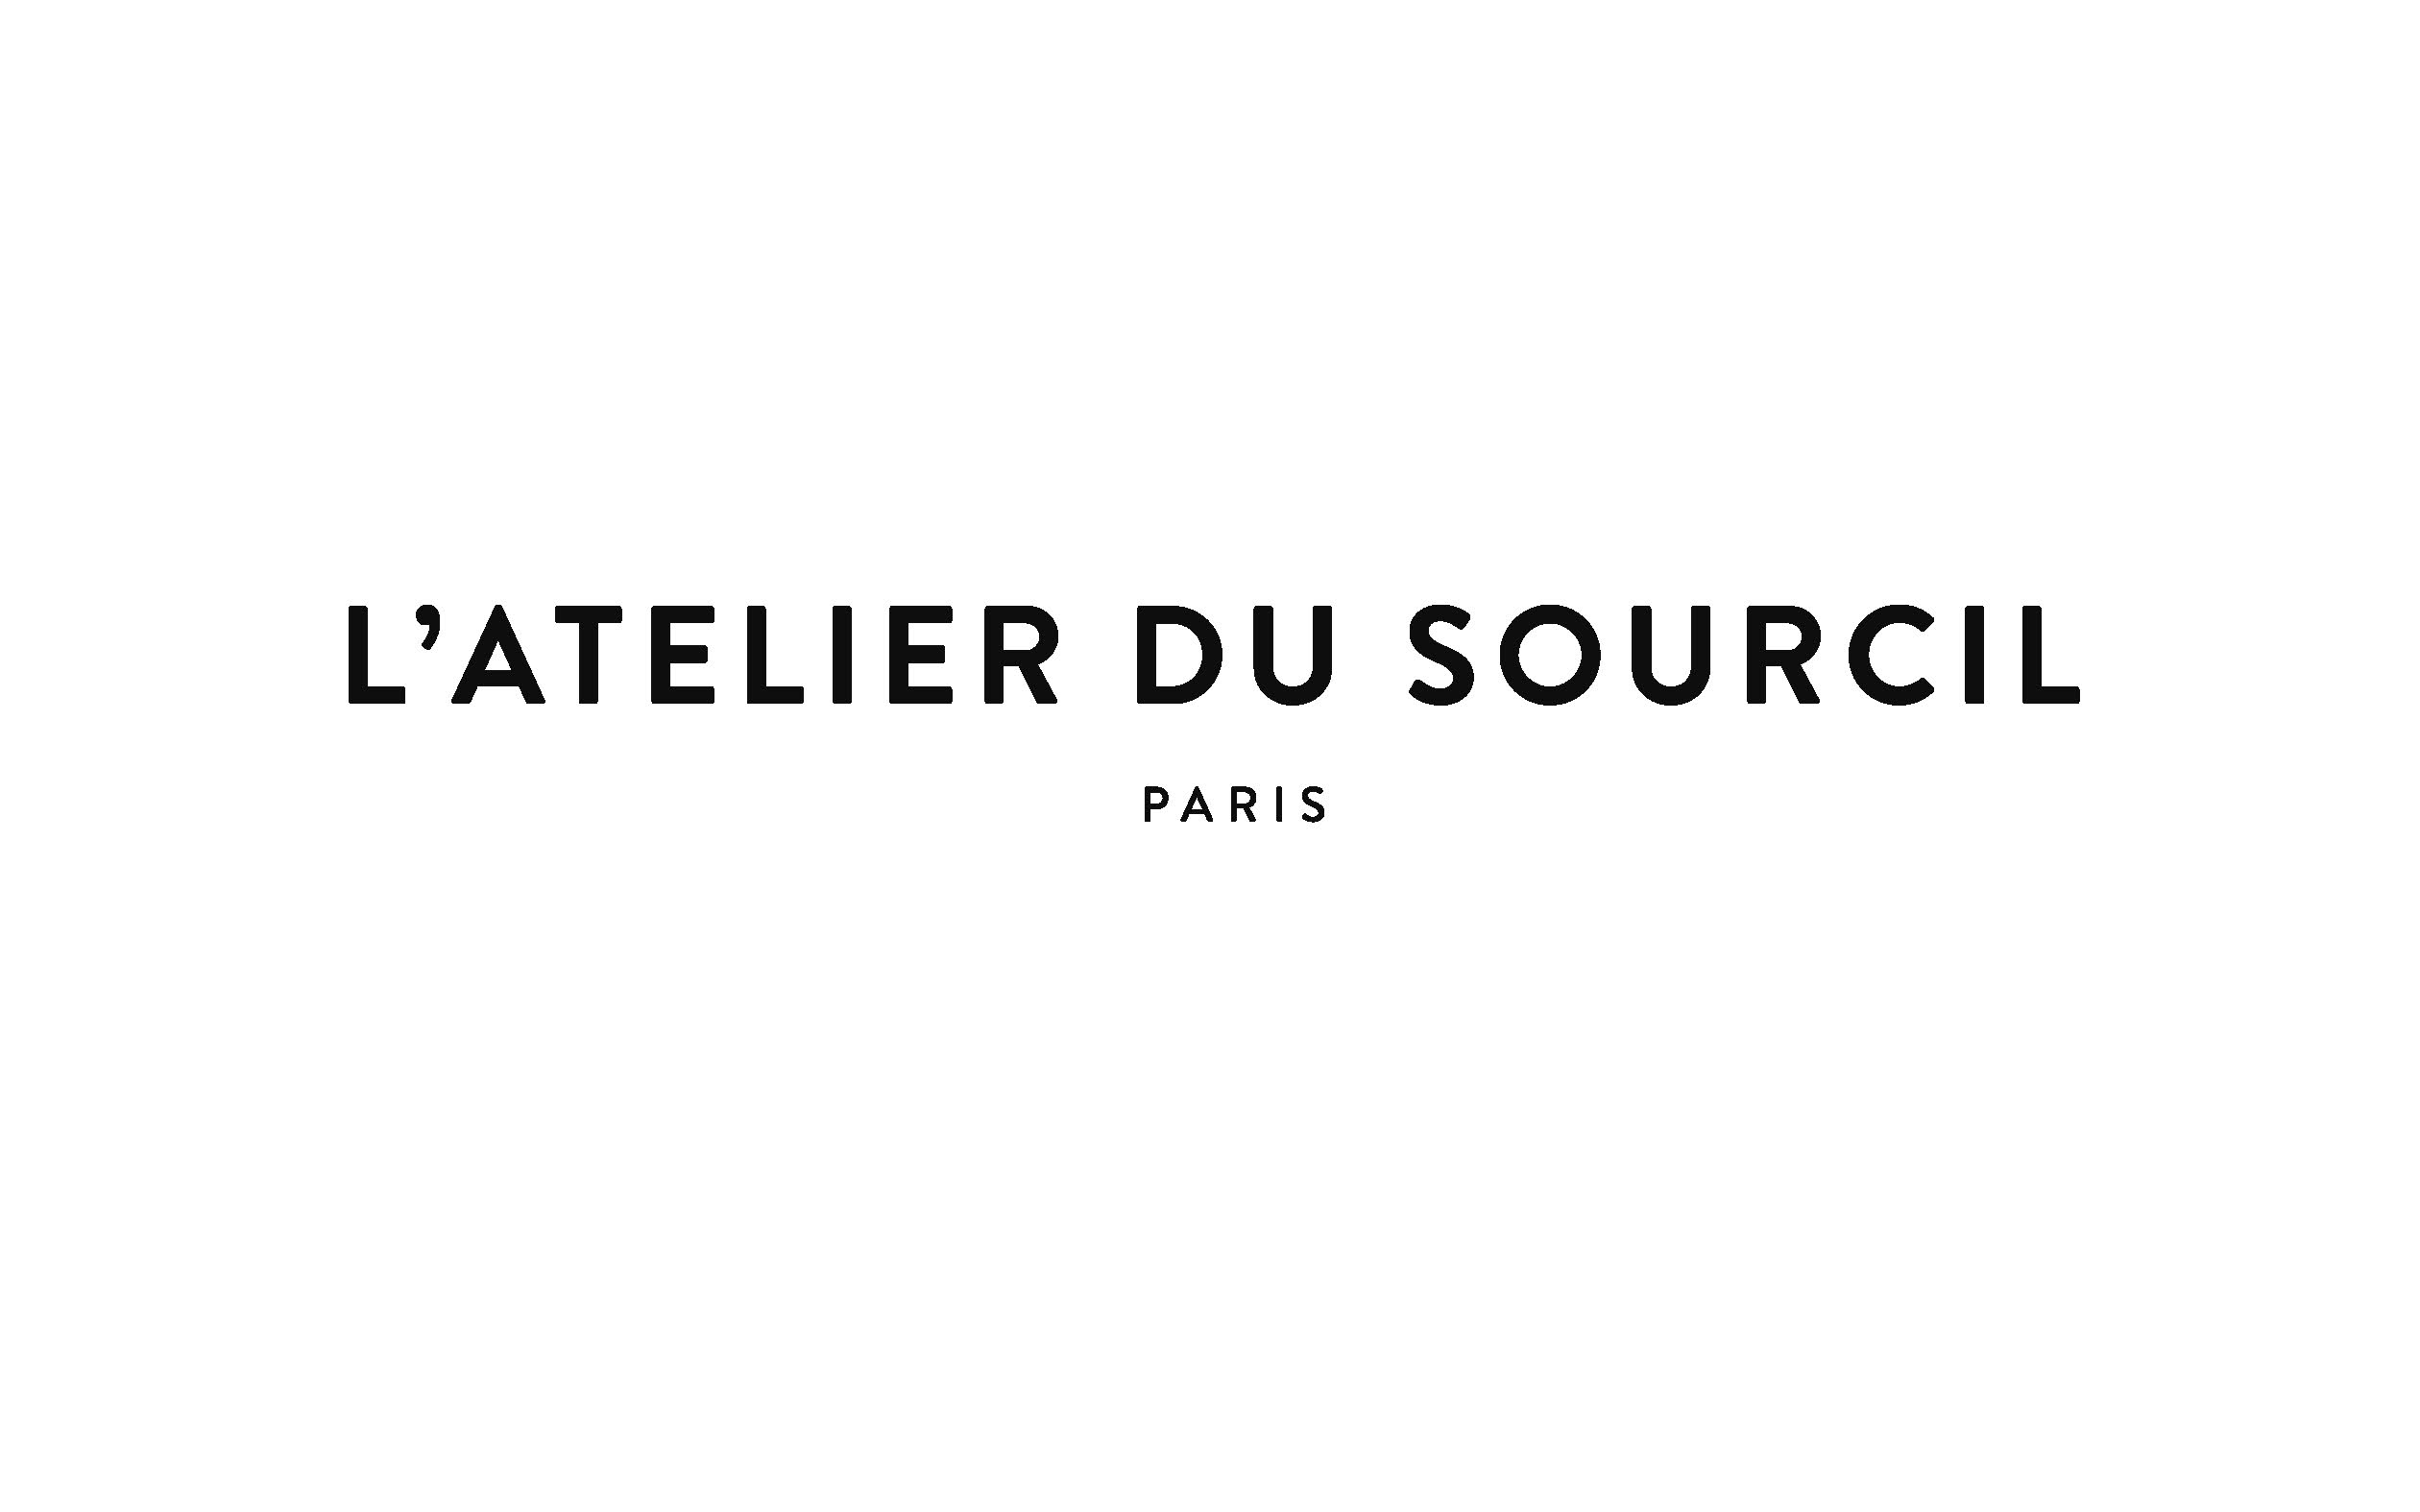 L'Atelier du Sourcil - Paris 6